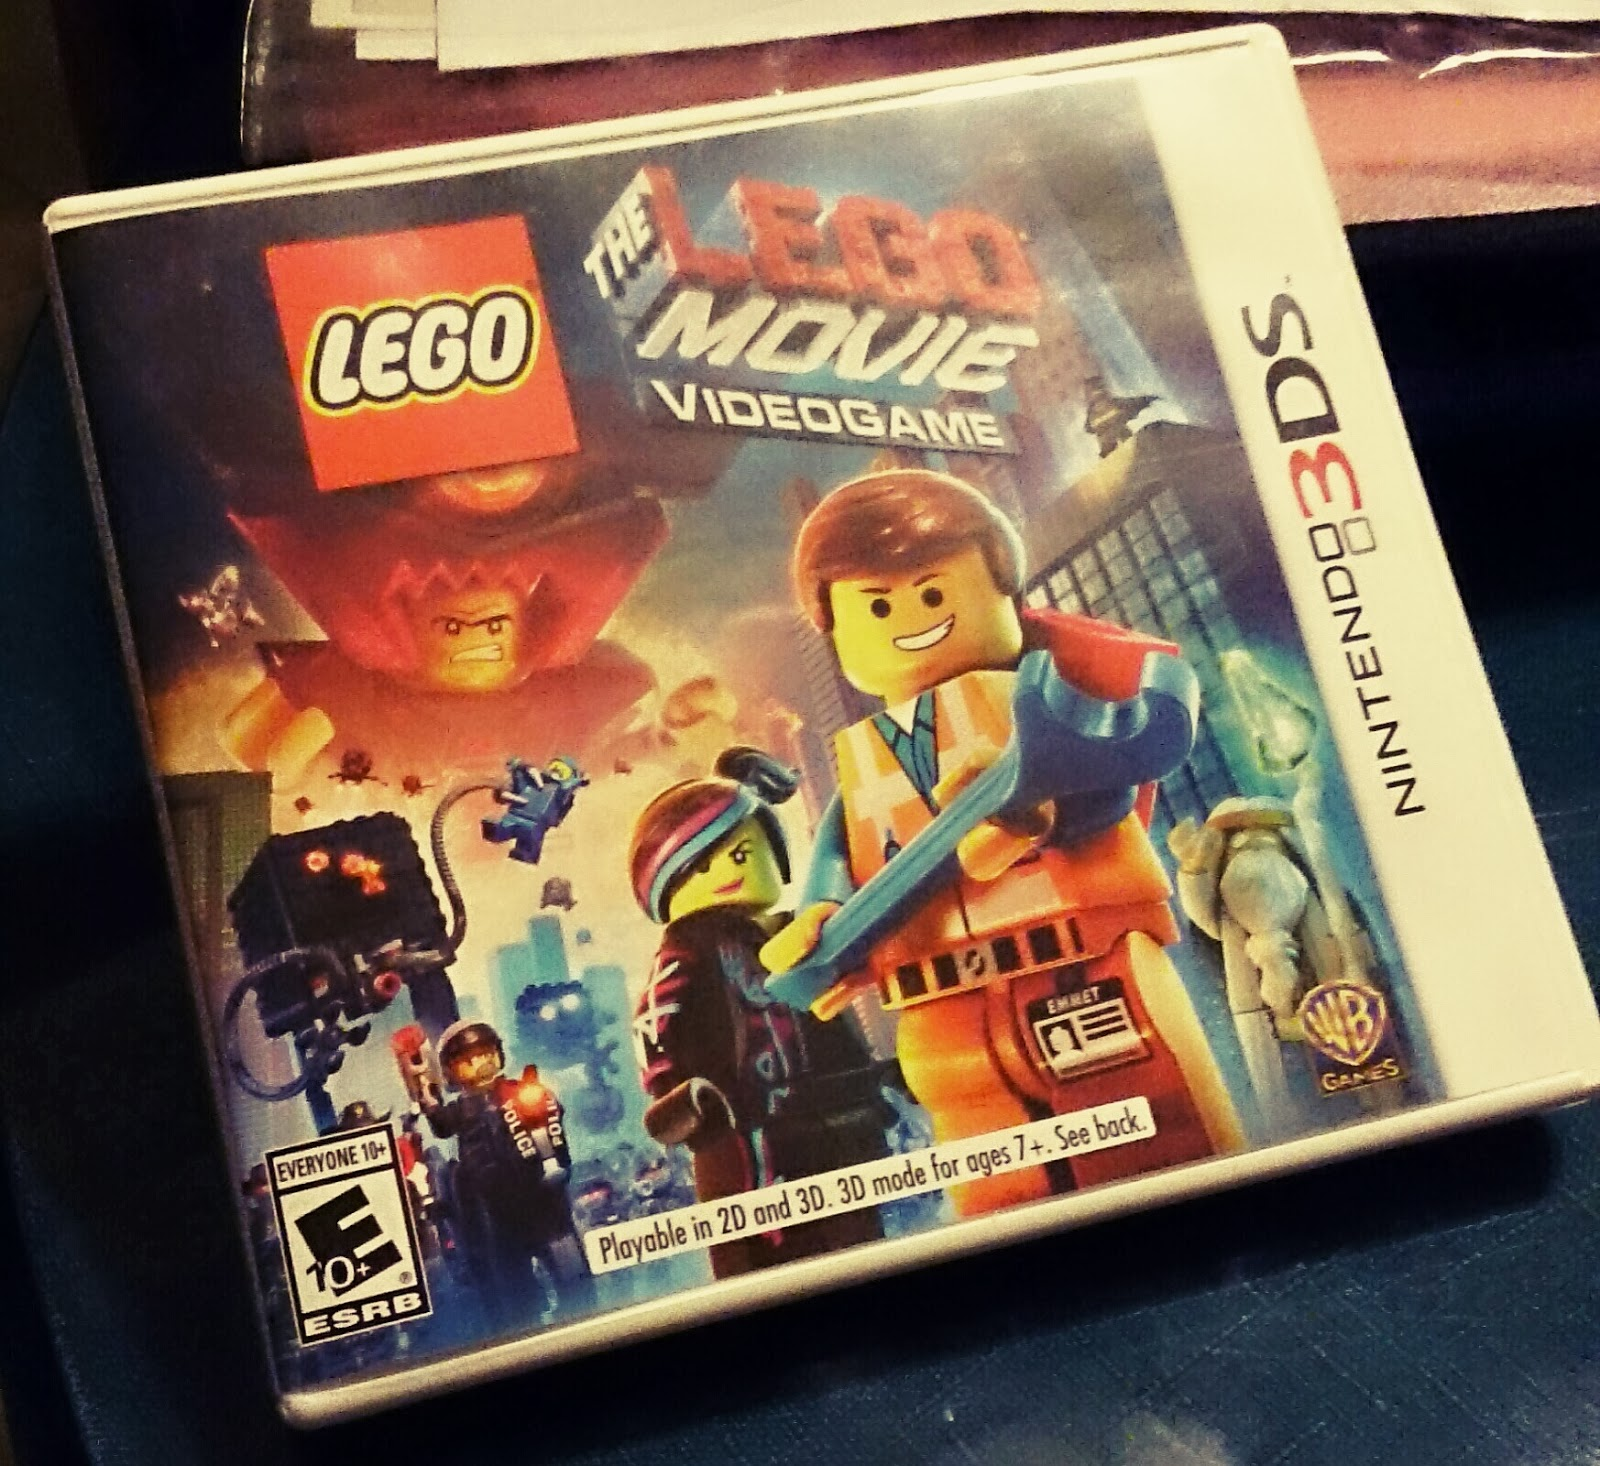 the lego movie, the lego movie videogame, lego, video game, nintendo 3ds